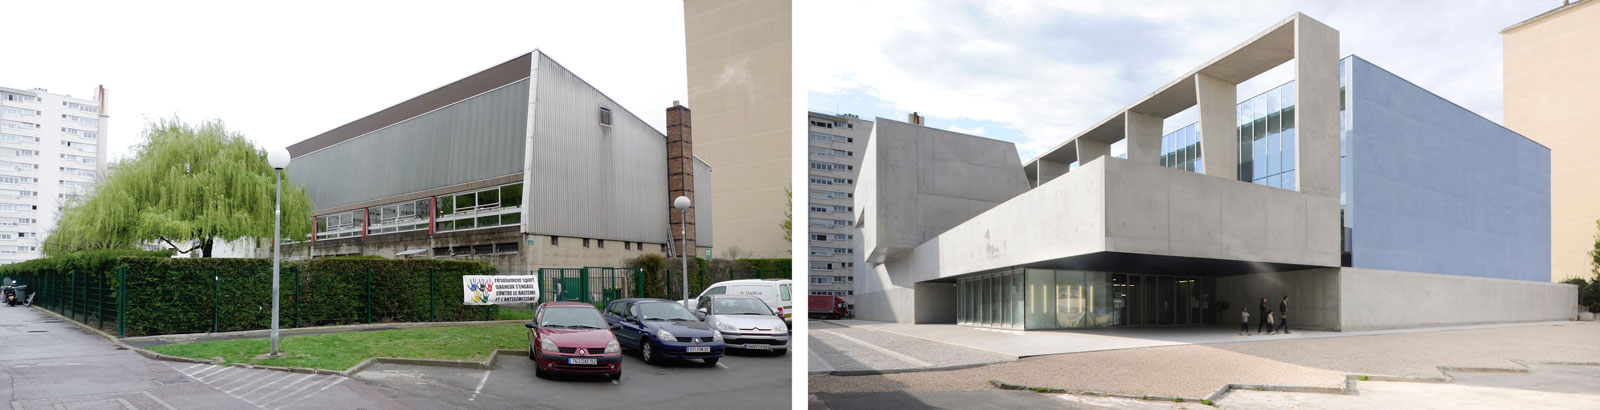 00_BEFORE-AFTER_01